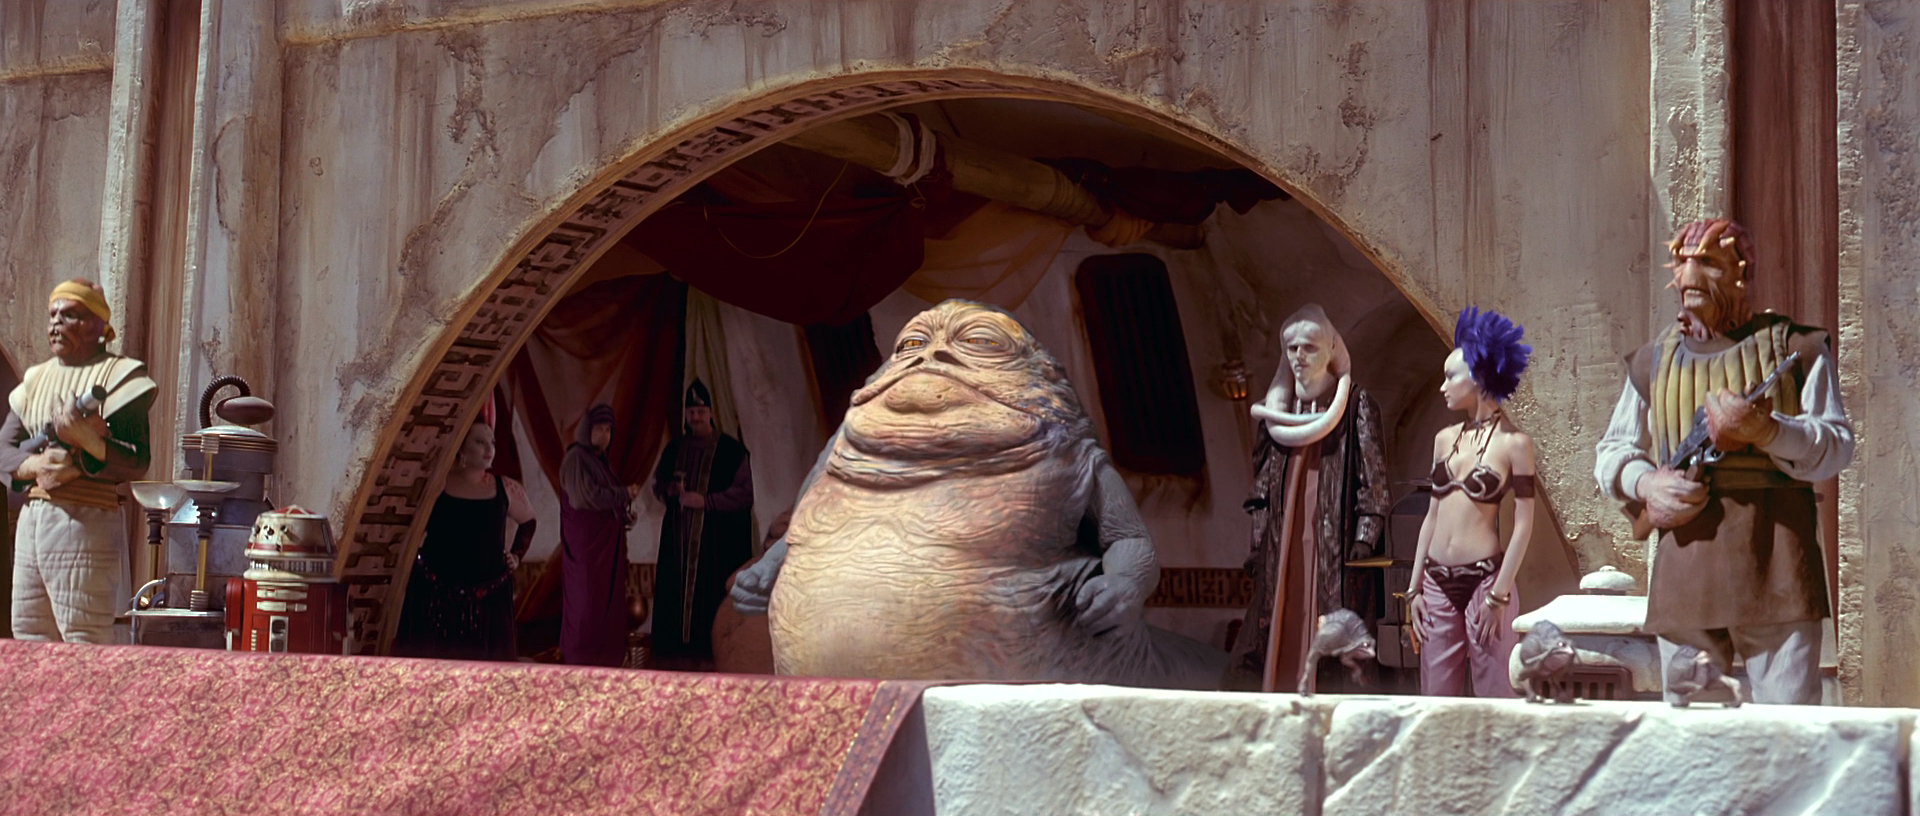 http://img2.wikia.nocookie.net/__cb20130120032242/starwars/images/d/d7/Jabba%27s_private_box.png